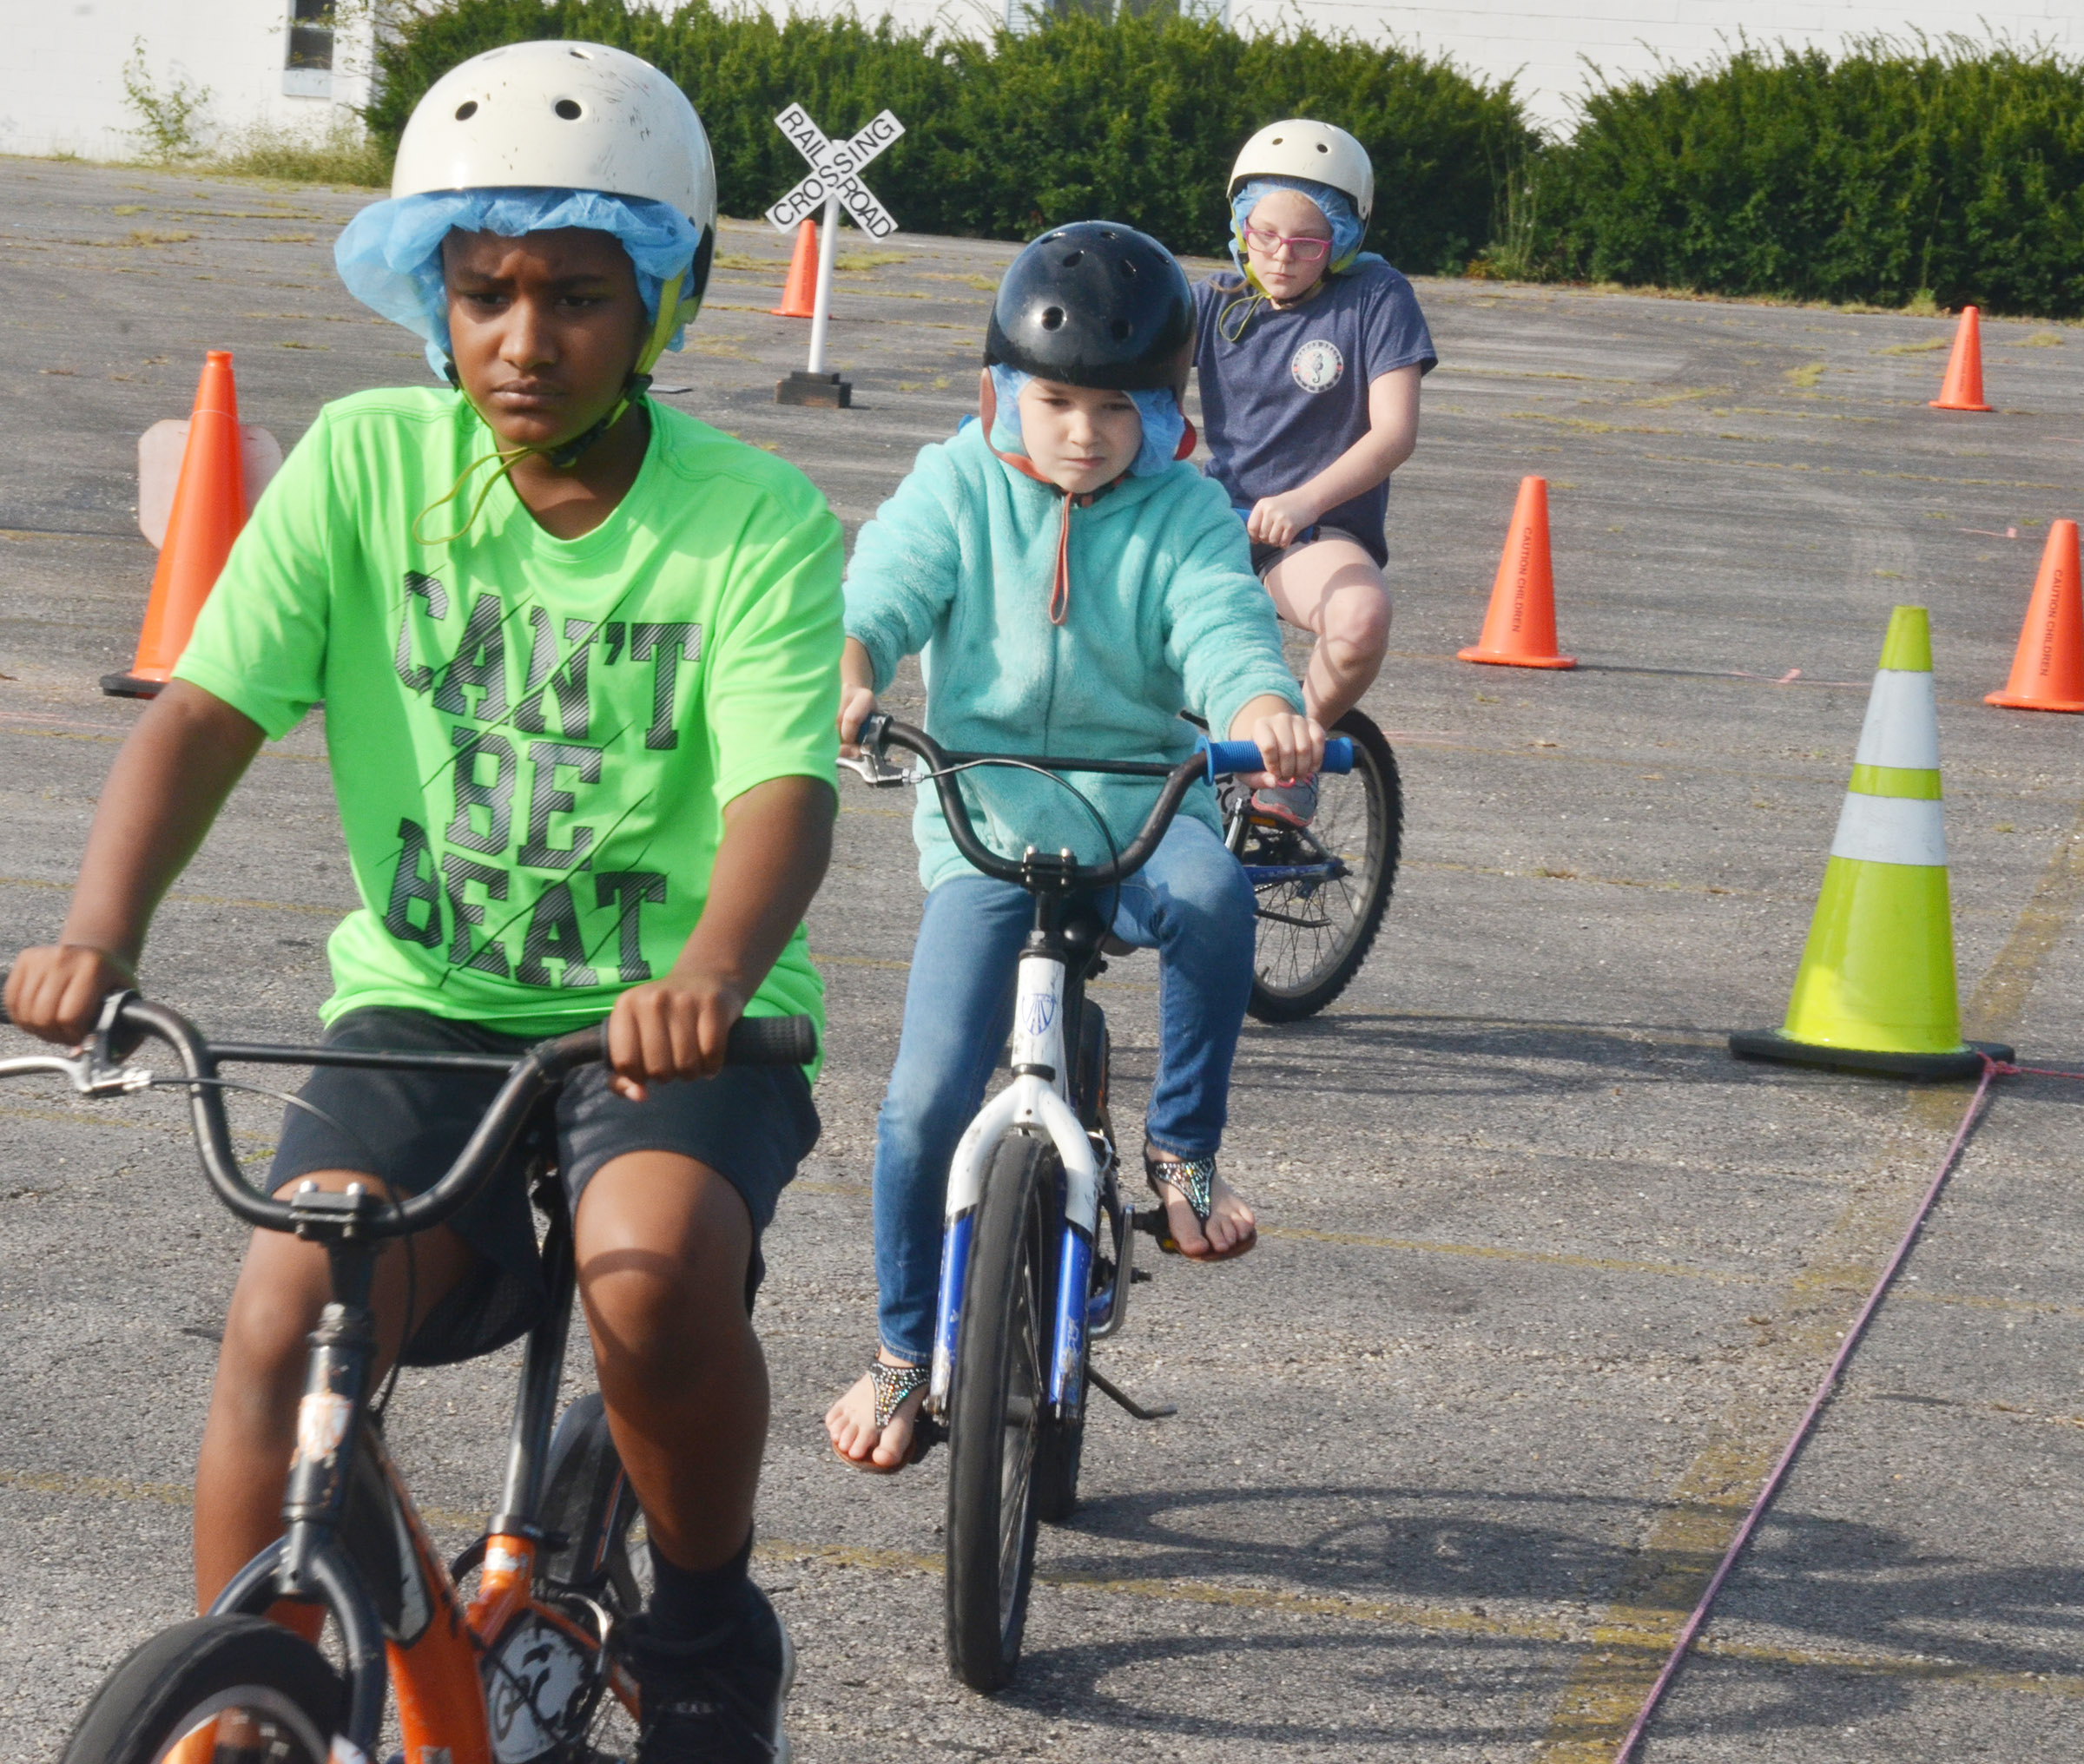 CES fourth-graders, from left, Shaiden Calhoun, Destiny Abell and Jaylen Clark obey bicycle rules.